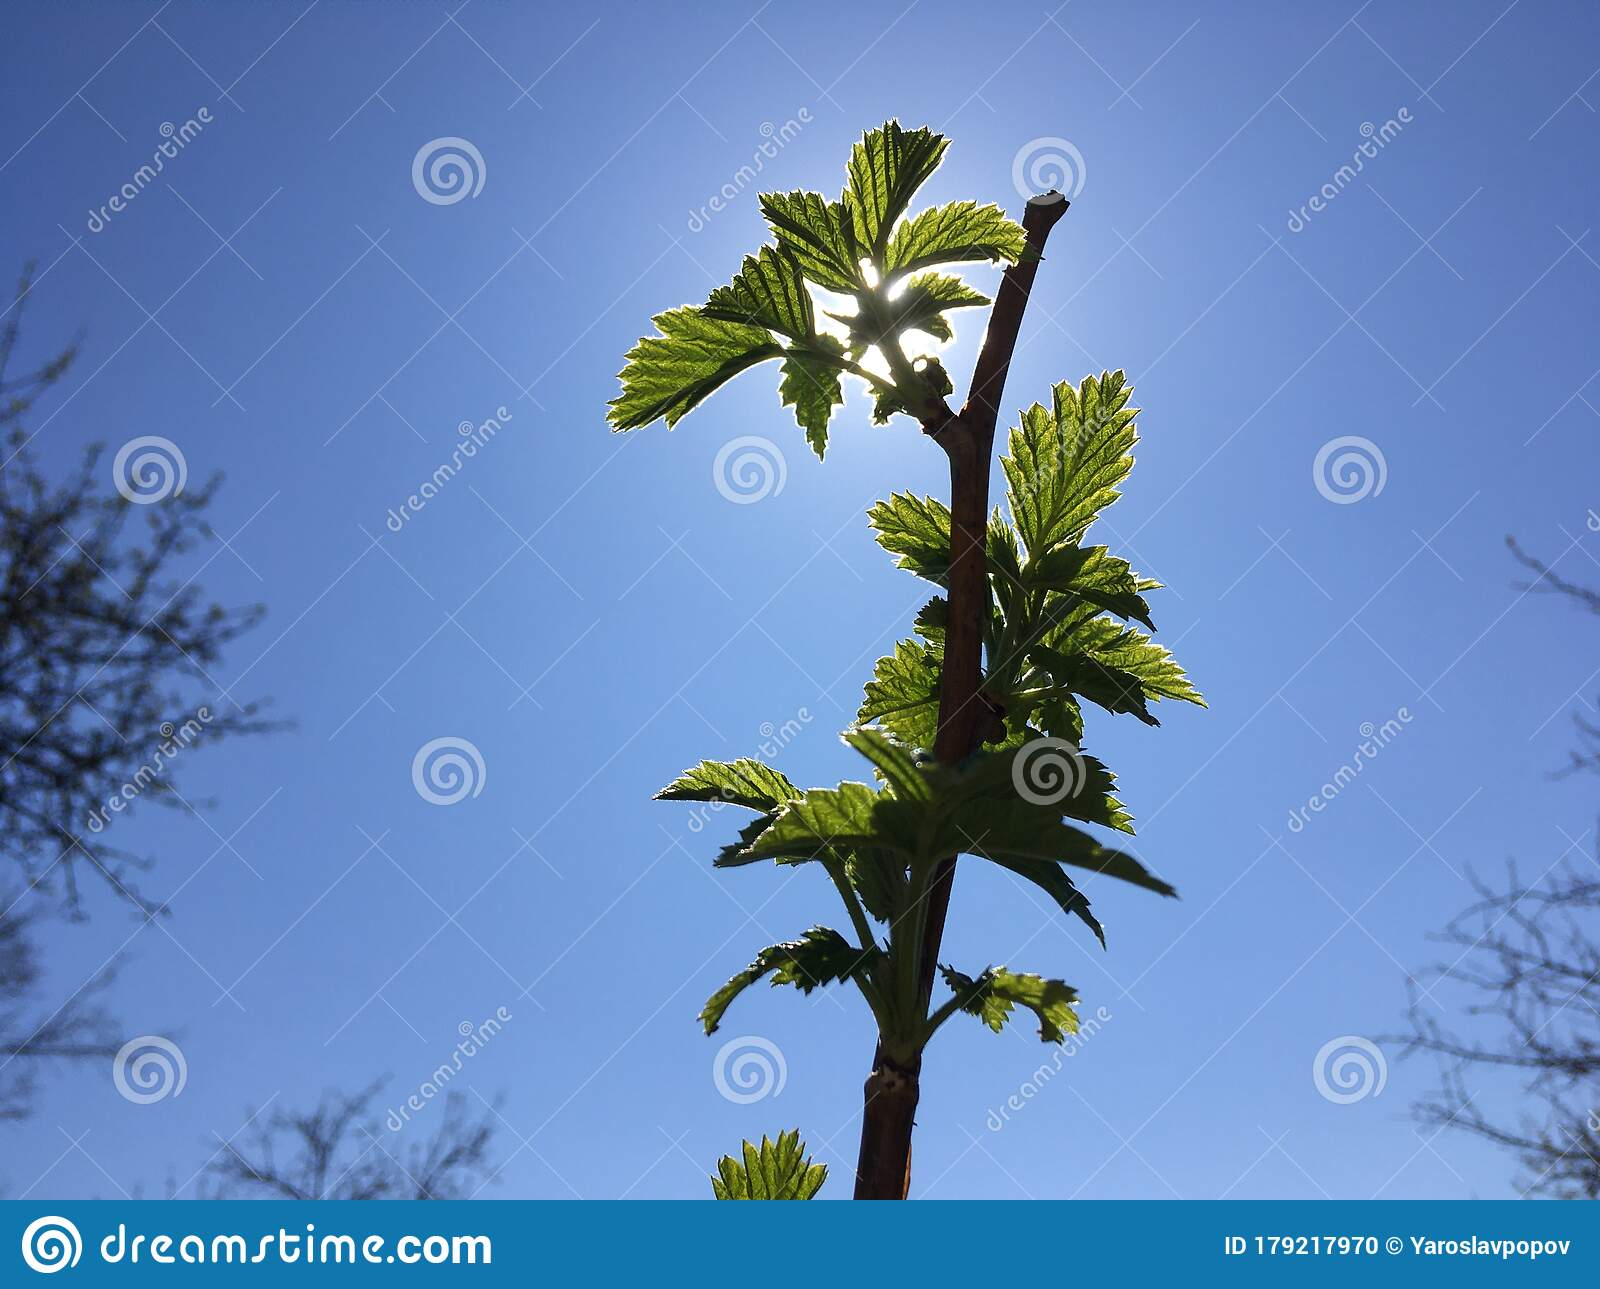 Minimalistic Natural Wallpaper Green Leaves And Blue Sky Stock Photo Image Of Life Shot 179217970